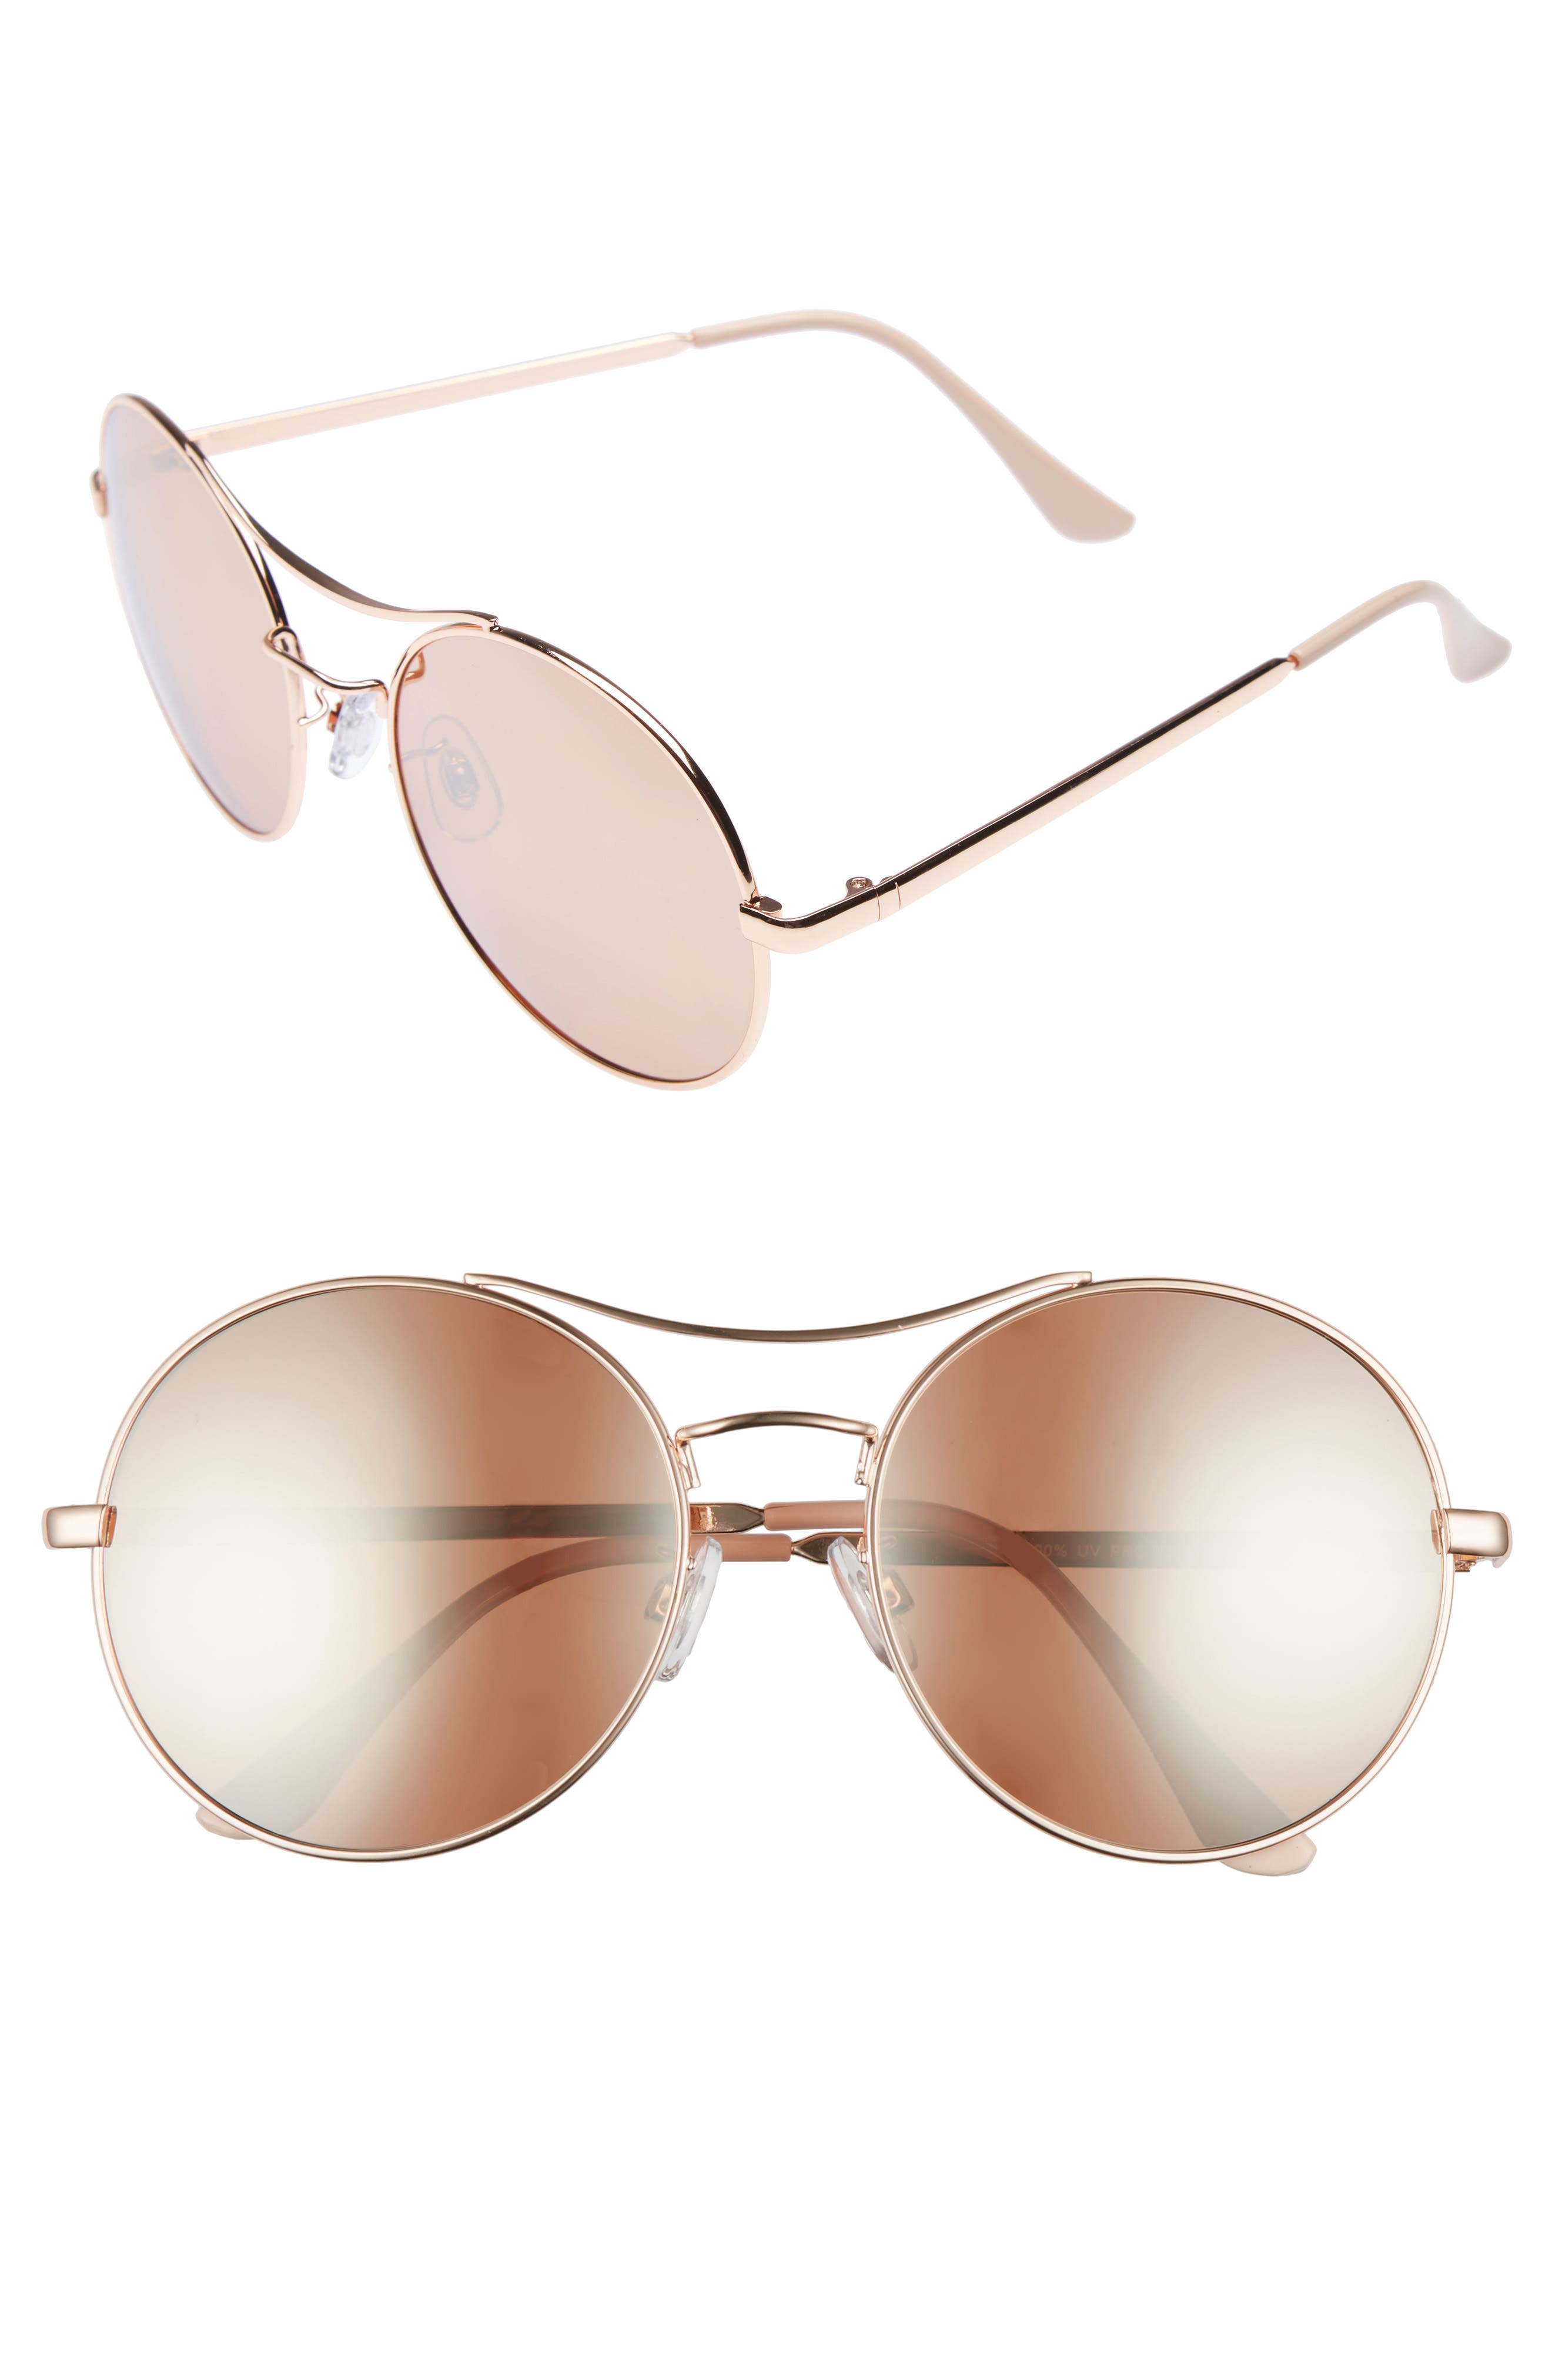 BP.,                             58mm Oversize Round Sunglasses,                             Main thumbnail 1, color,                             950